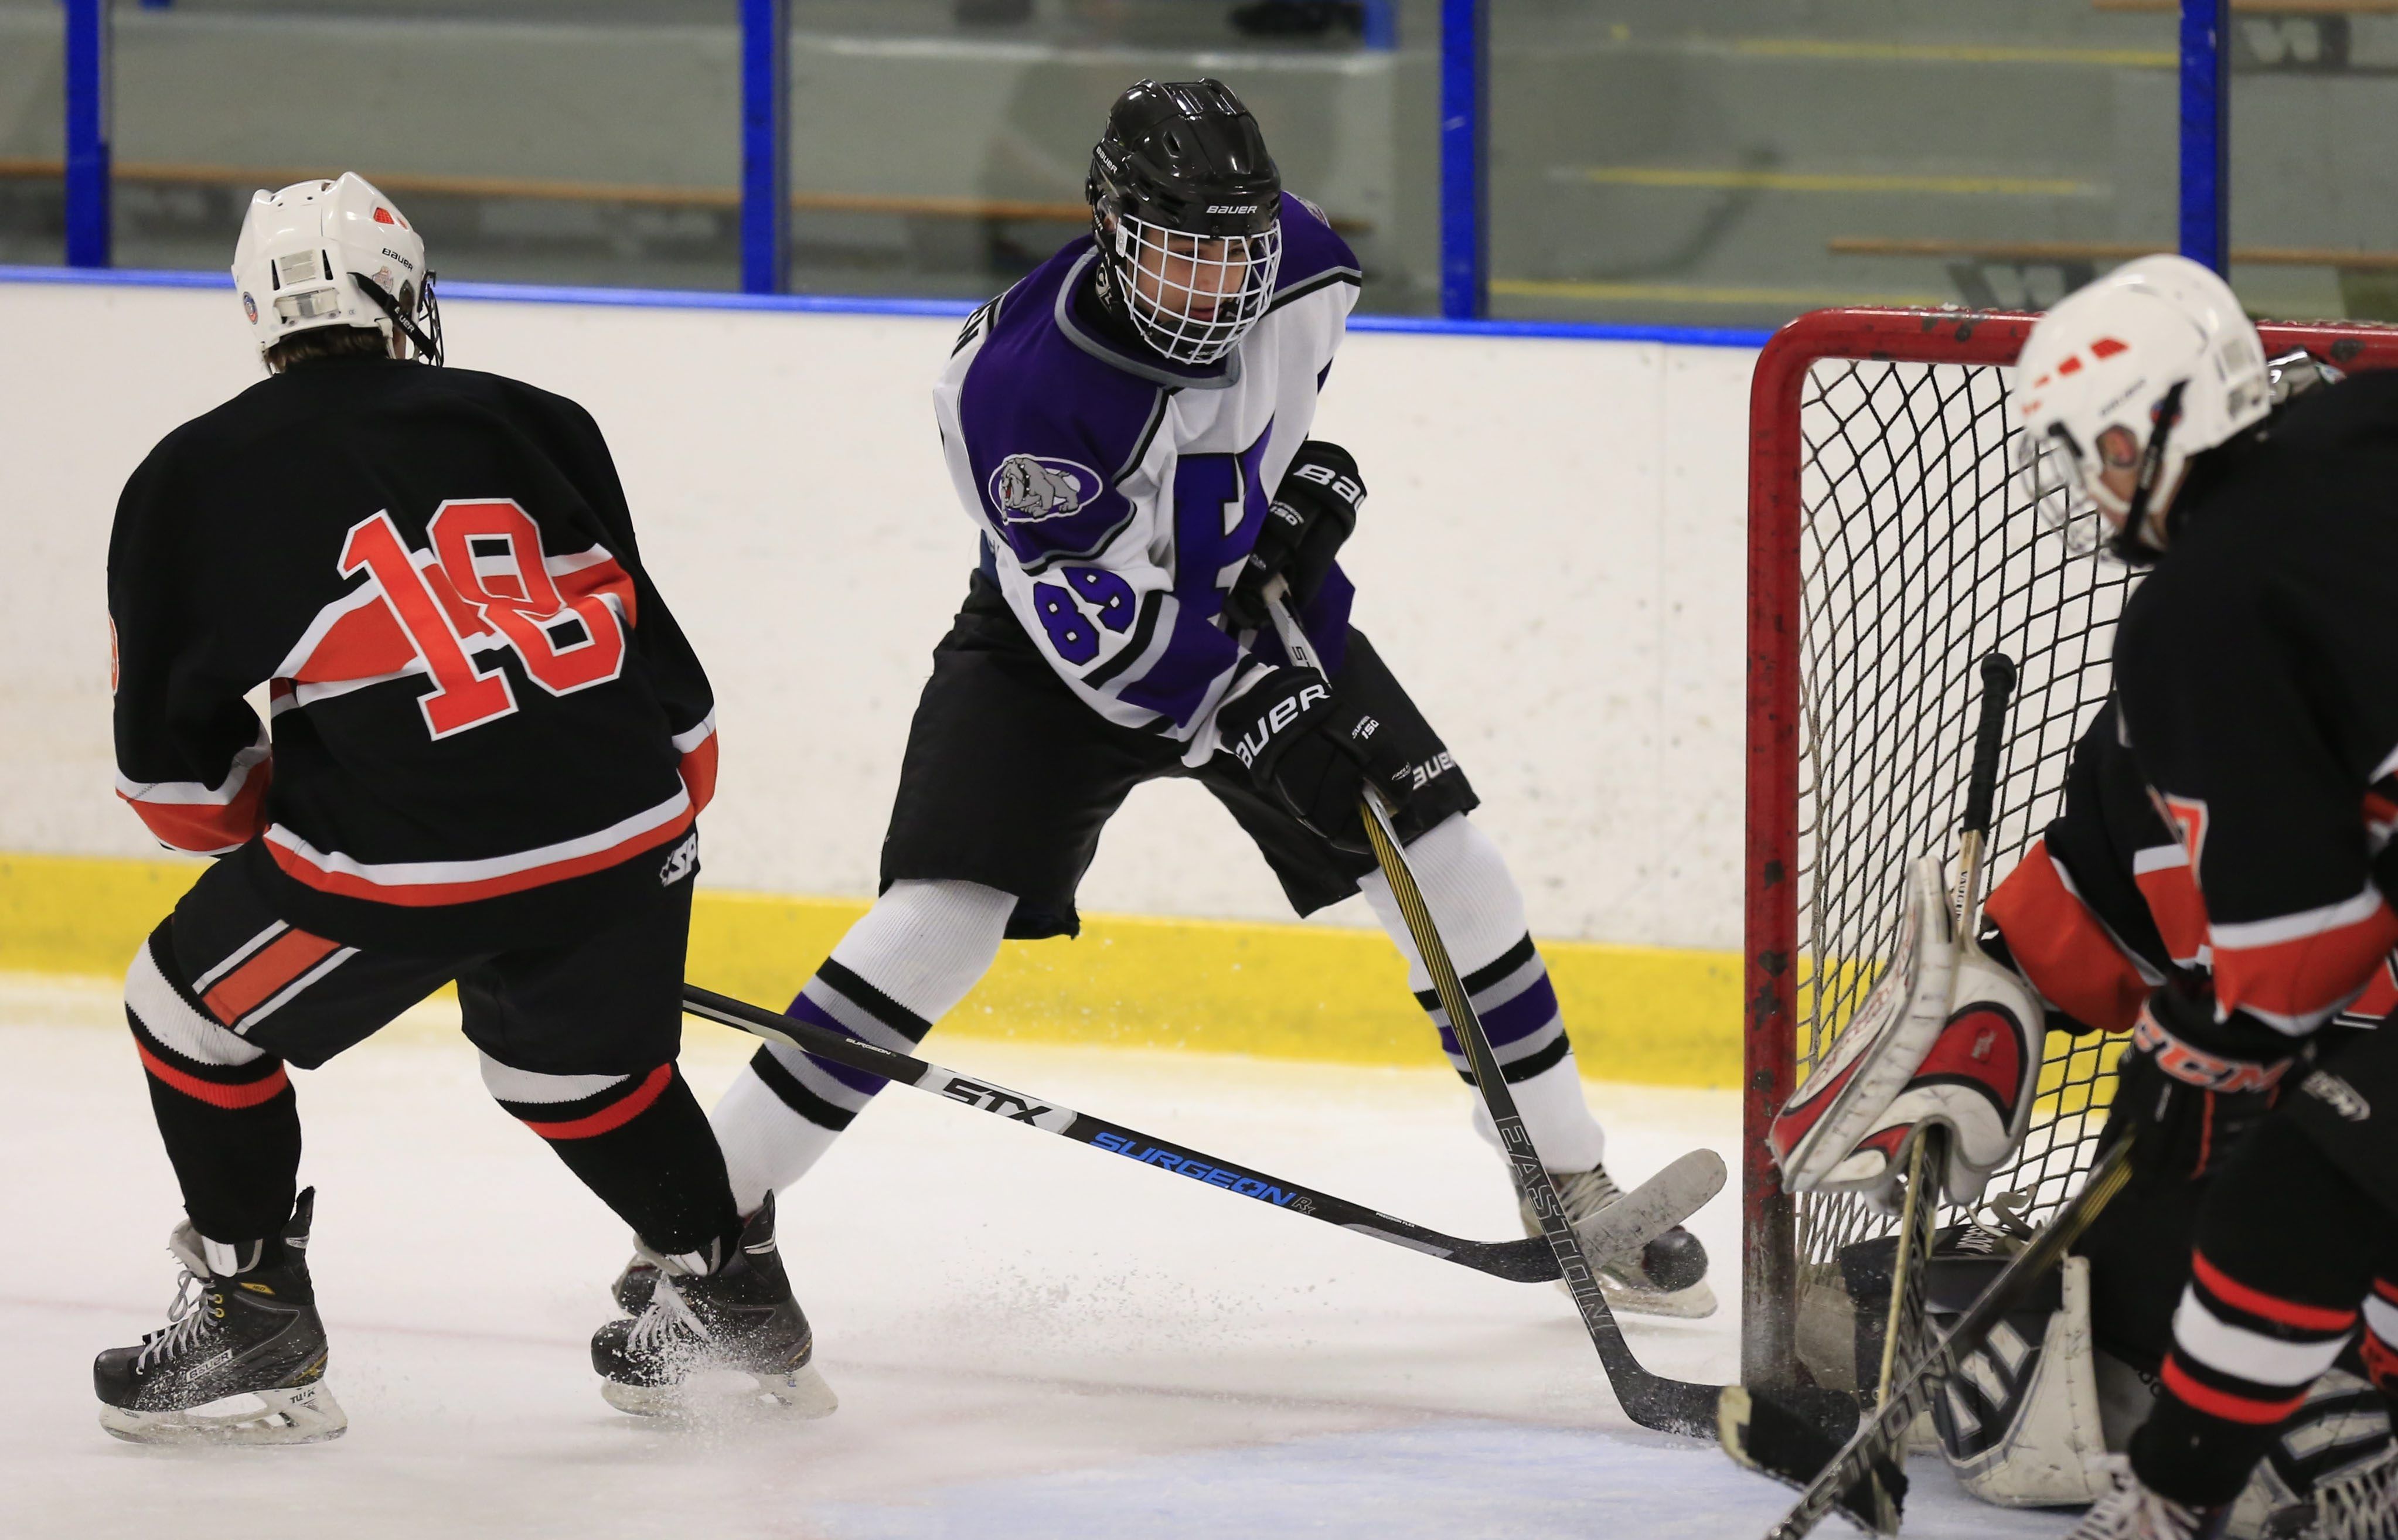 Hamburg's Jacob Hangen, center, scores against Amherst during second period playoff action at the Northtown Center on Thursday.